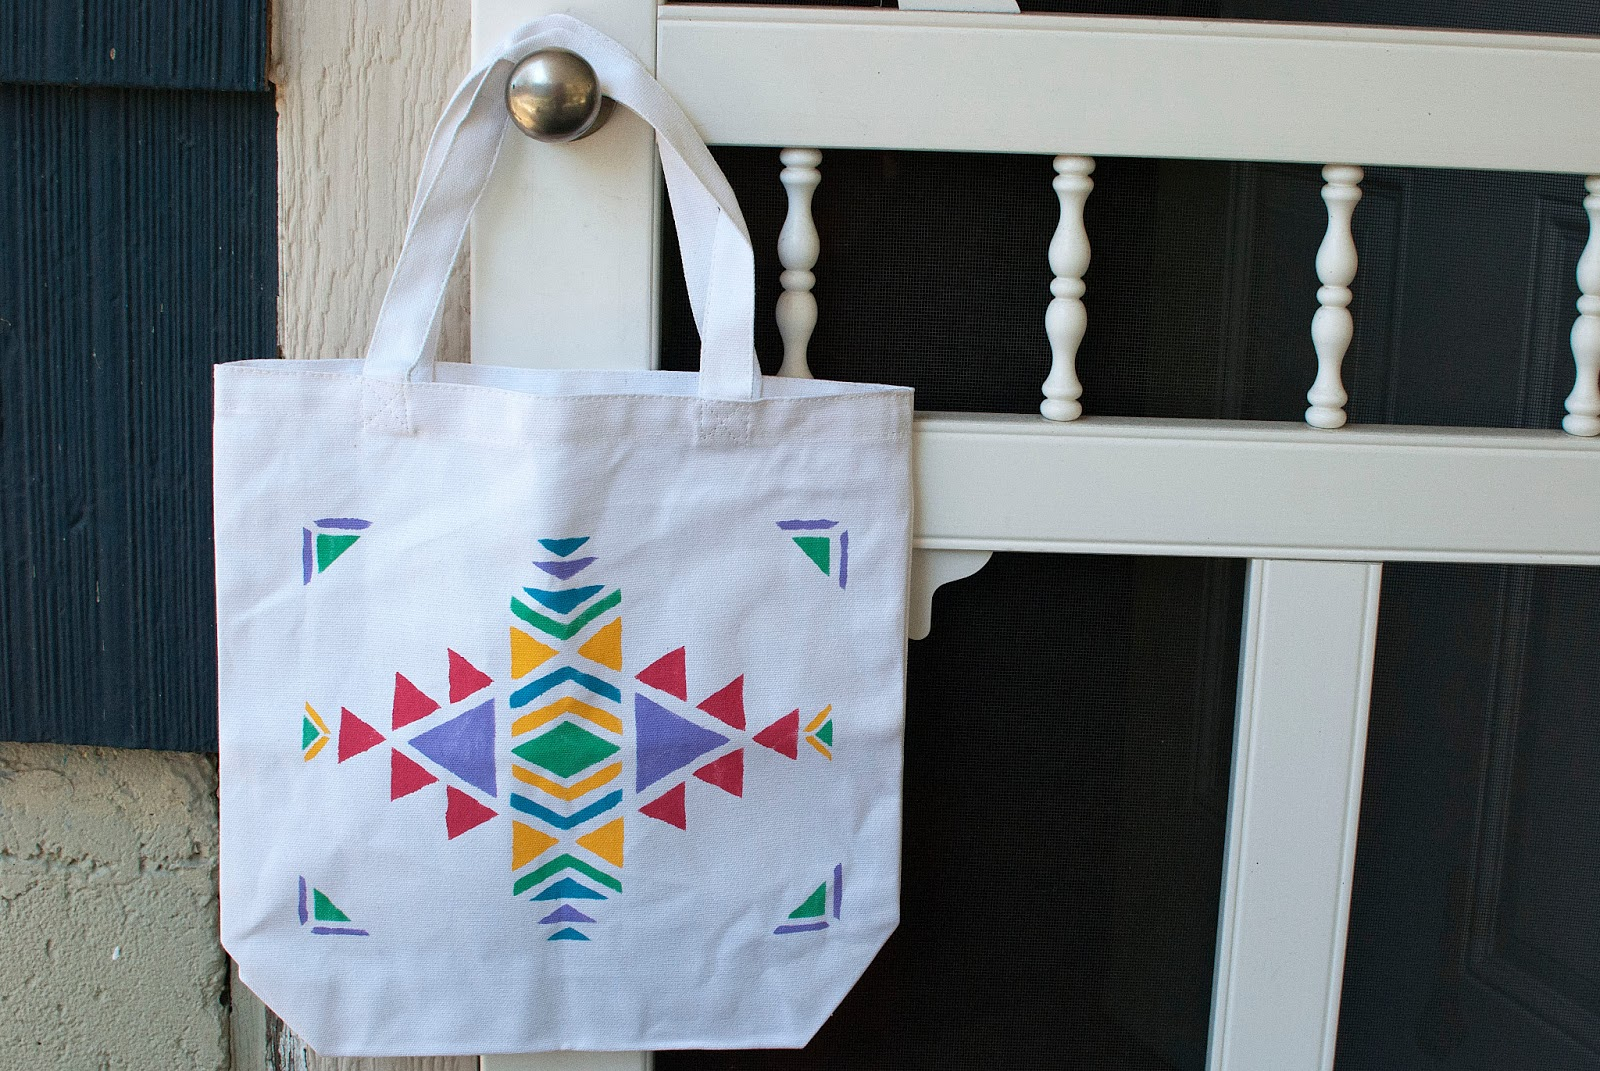 Make Your Brand Goes A Long Way With Printed Tote Bags